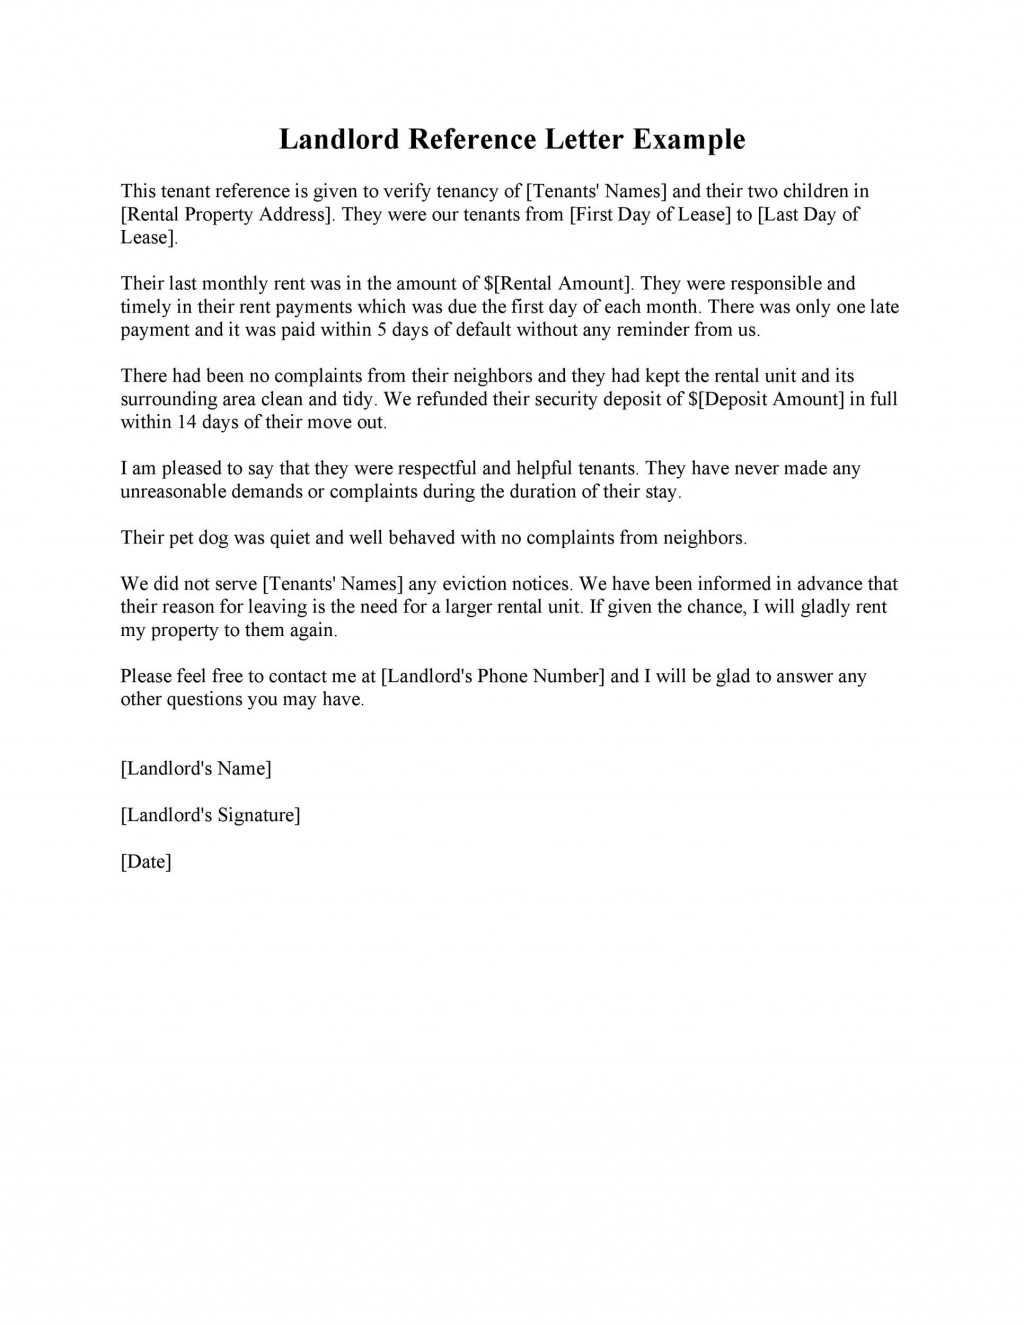 002 Magnificent Free Reference Letter Template For Tenant Image Large